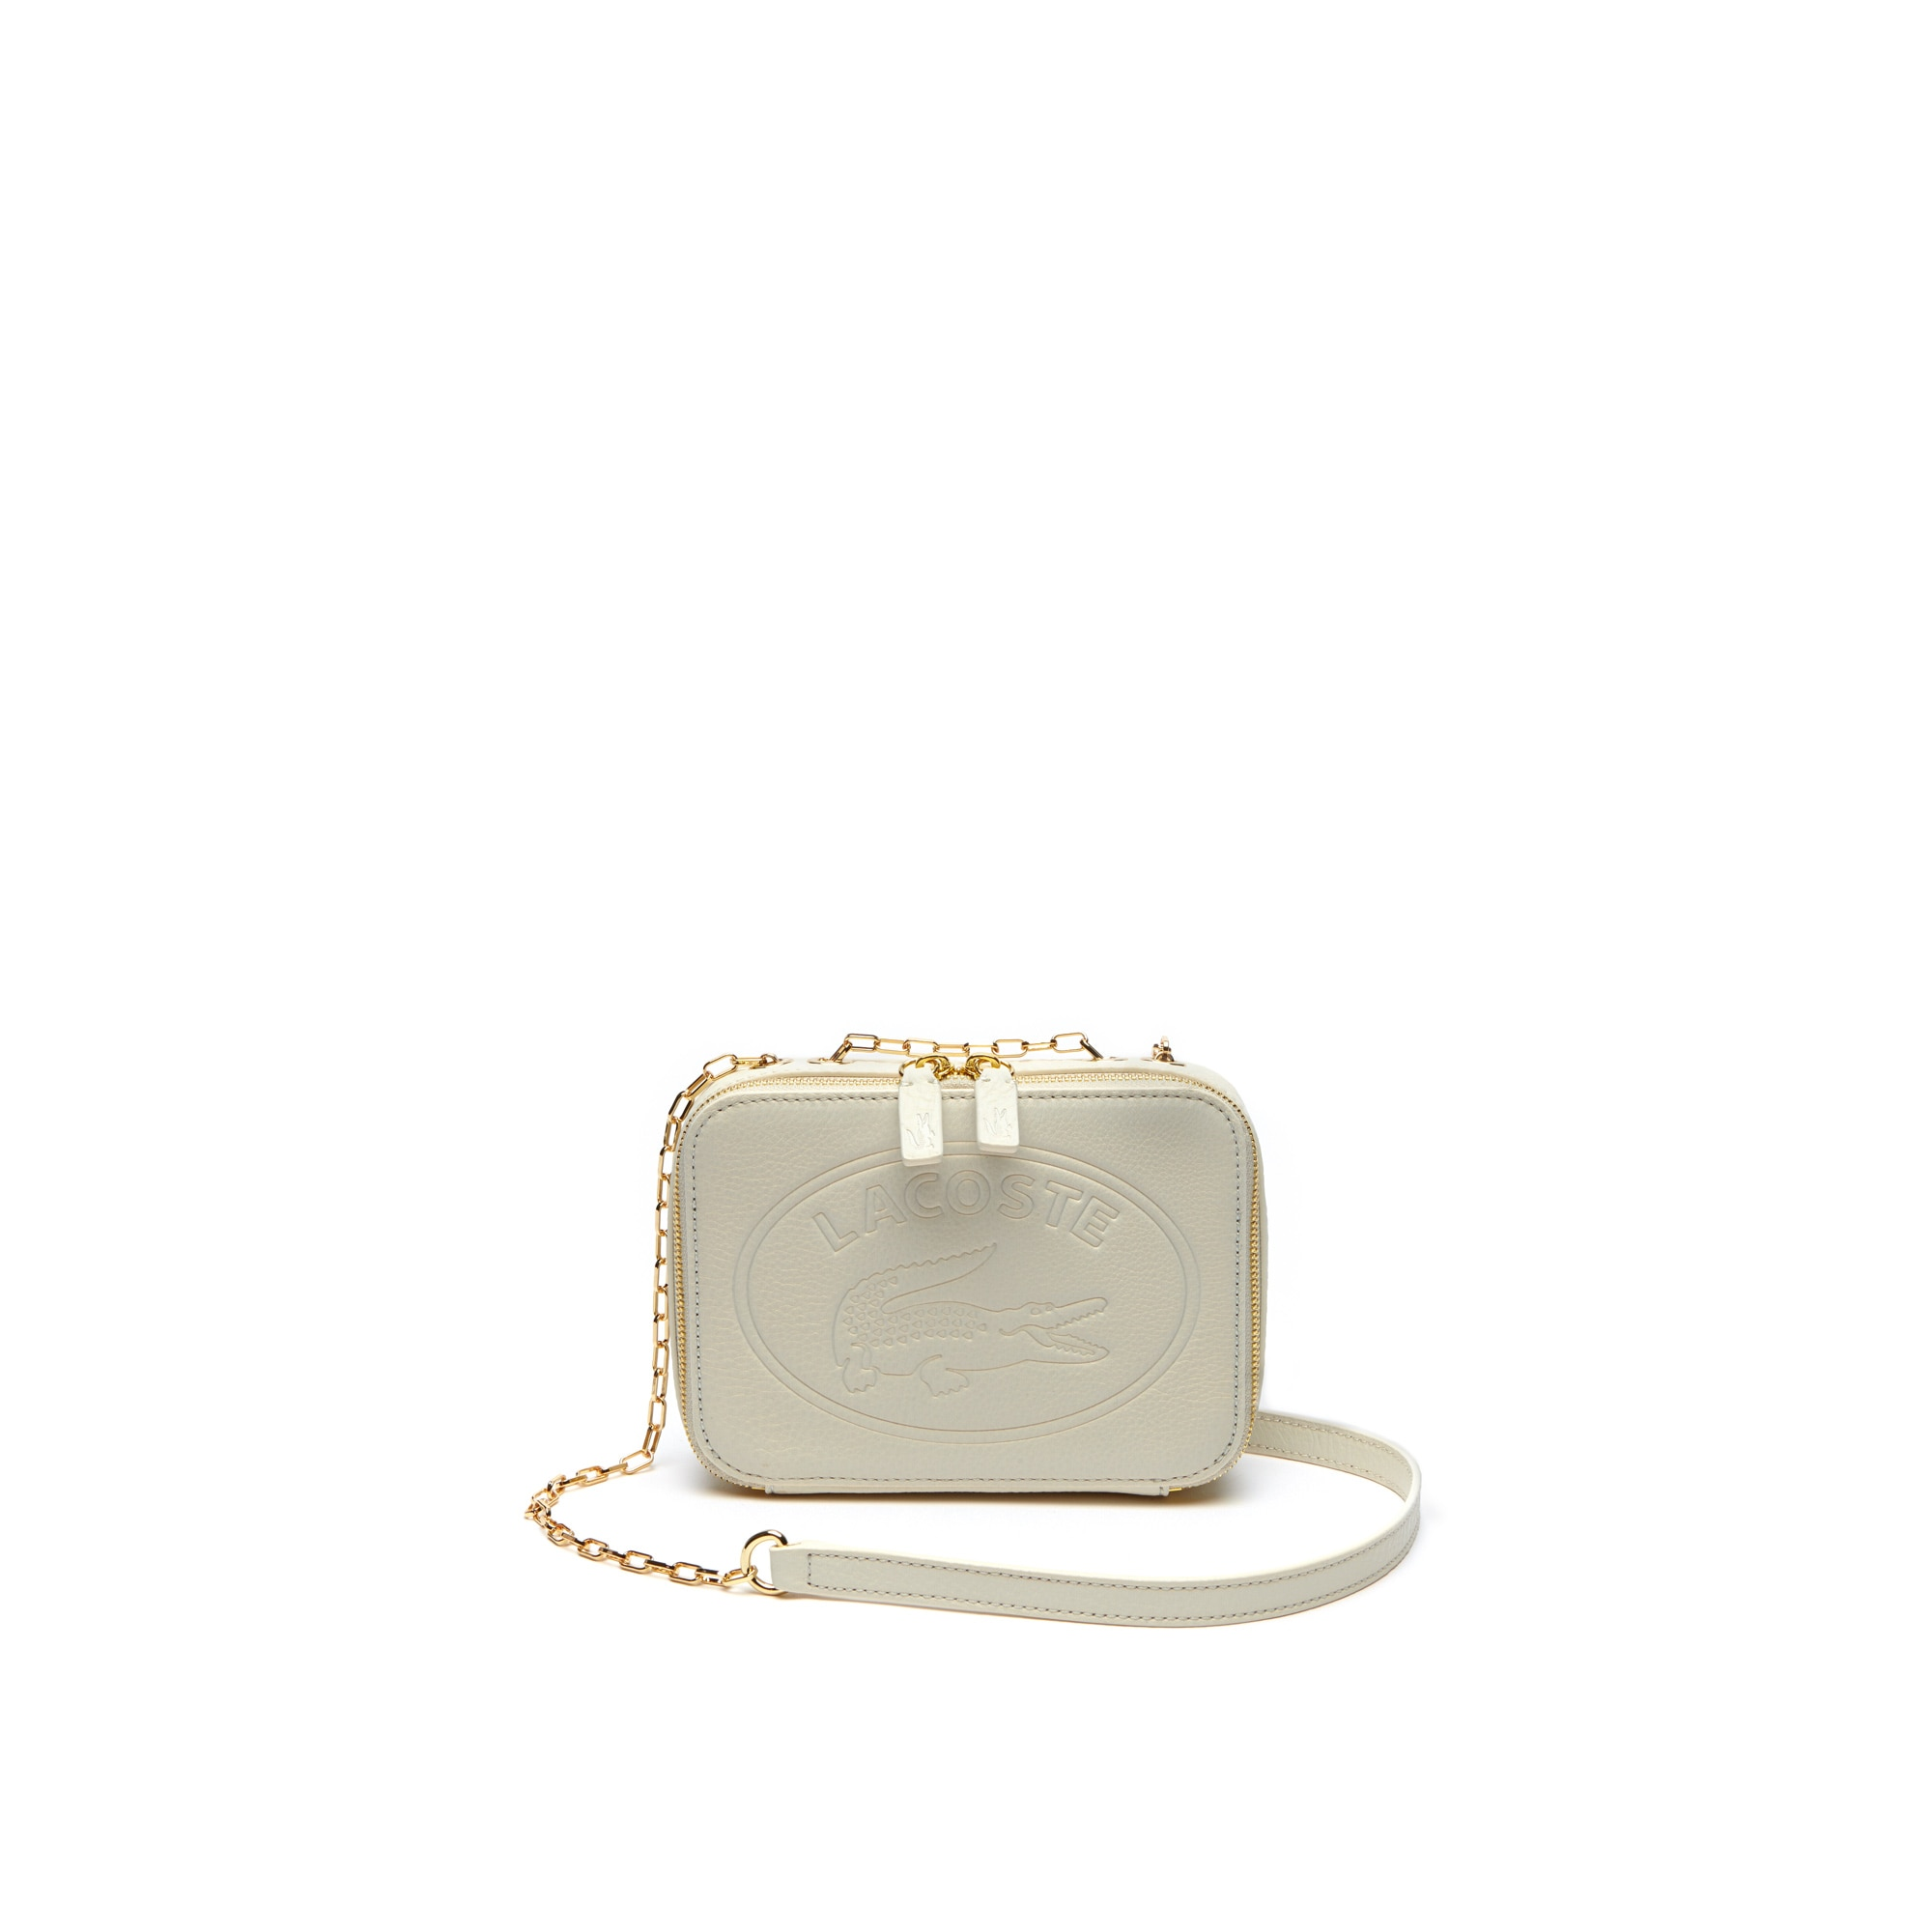 Women's Fashion Show Oval Lacoste Logo Grained Leather Crossover Bag